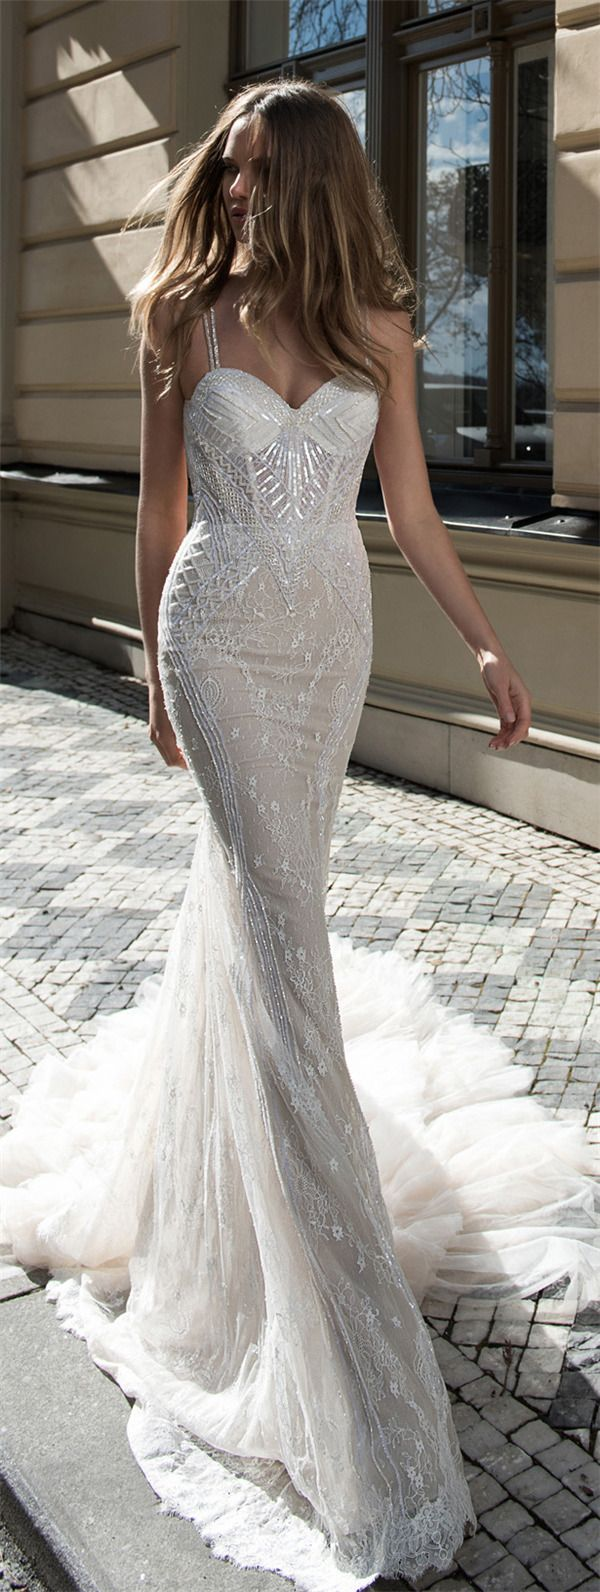 Berta Bridal Fall 2015 Wedding Dresses 40 See More: http://www.deerpearlflowers.com/berta-bridal-fall-2015-collection/: